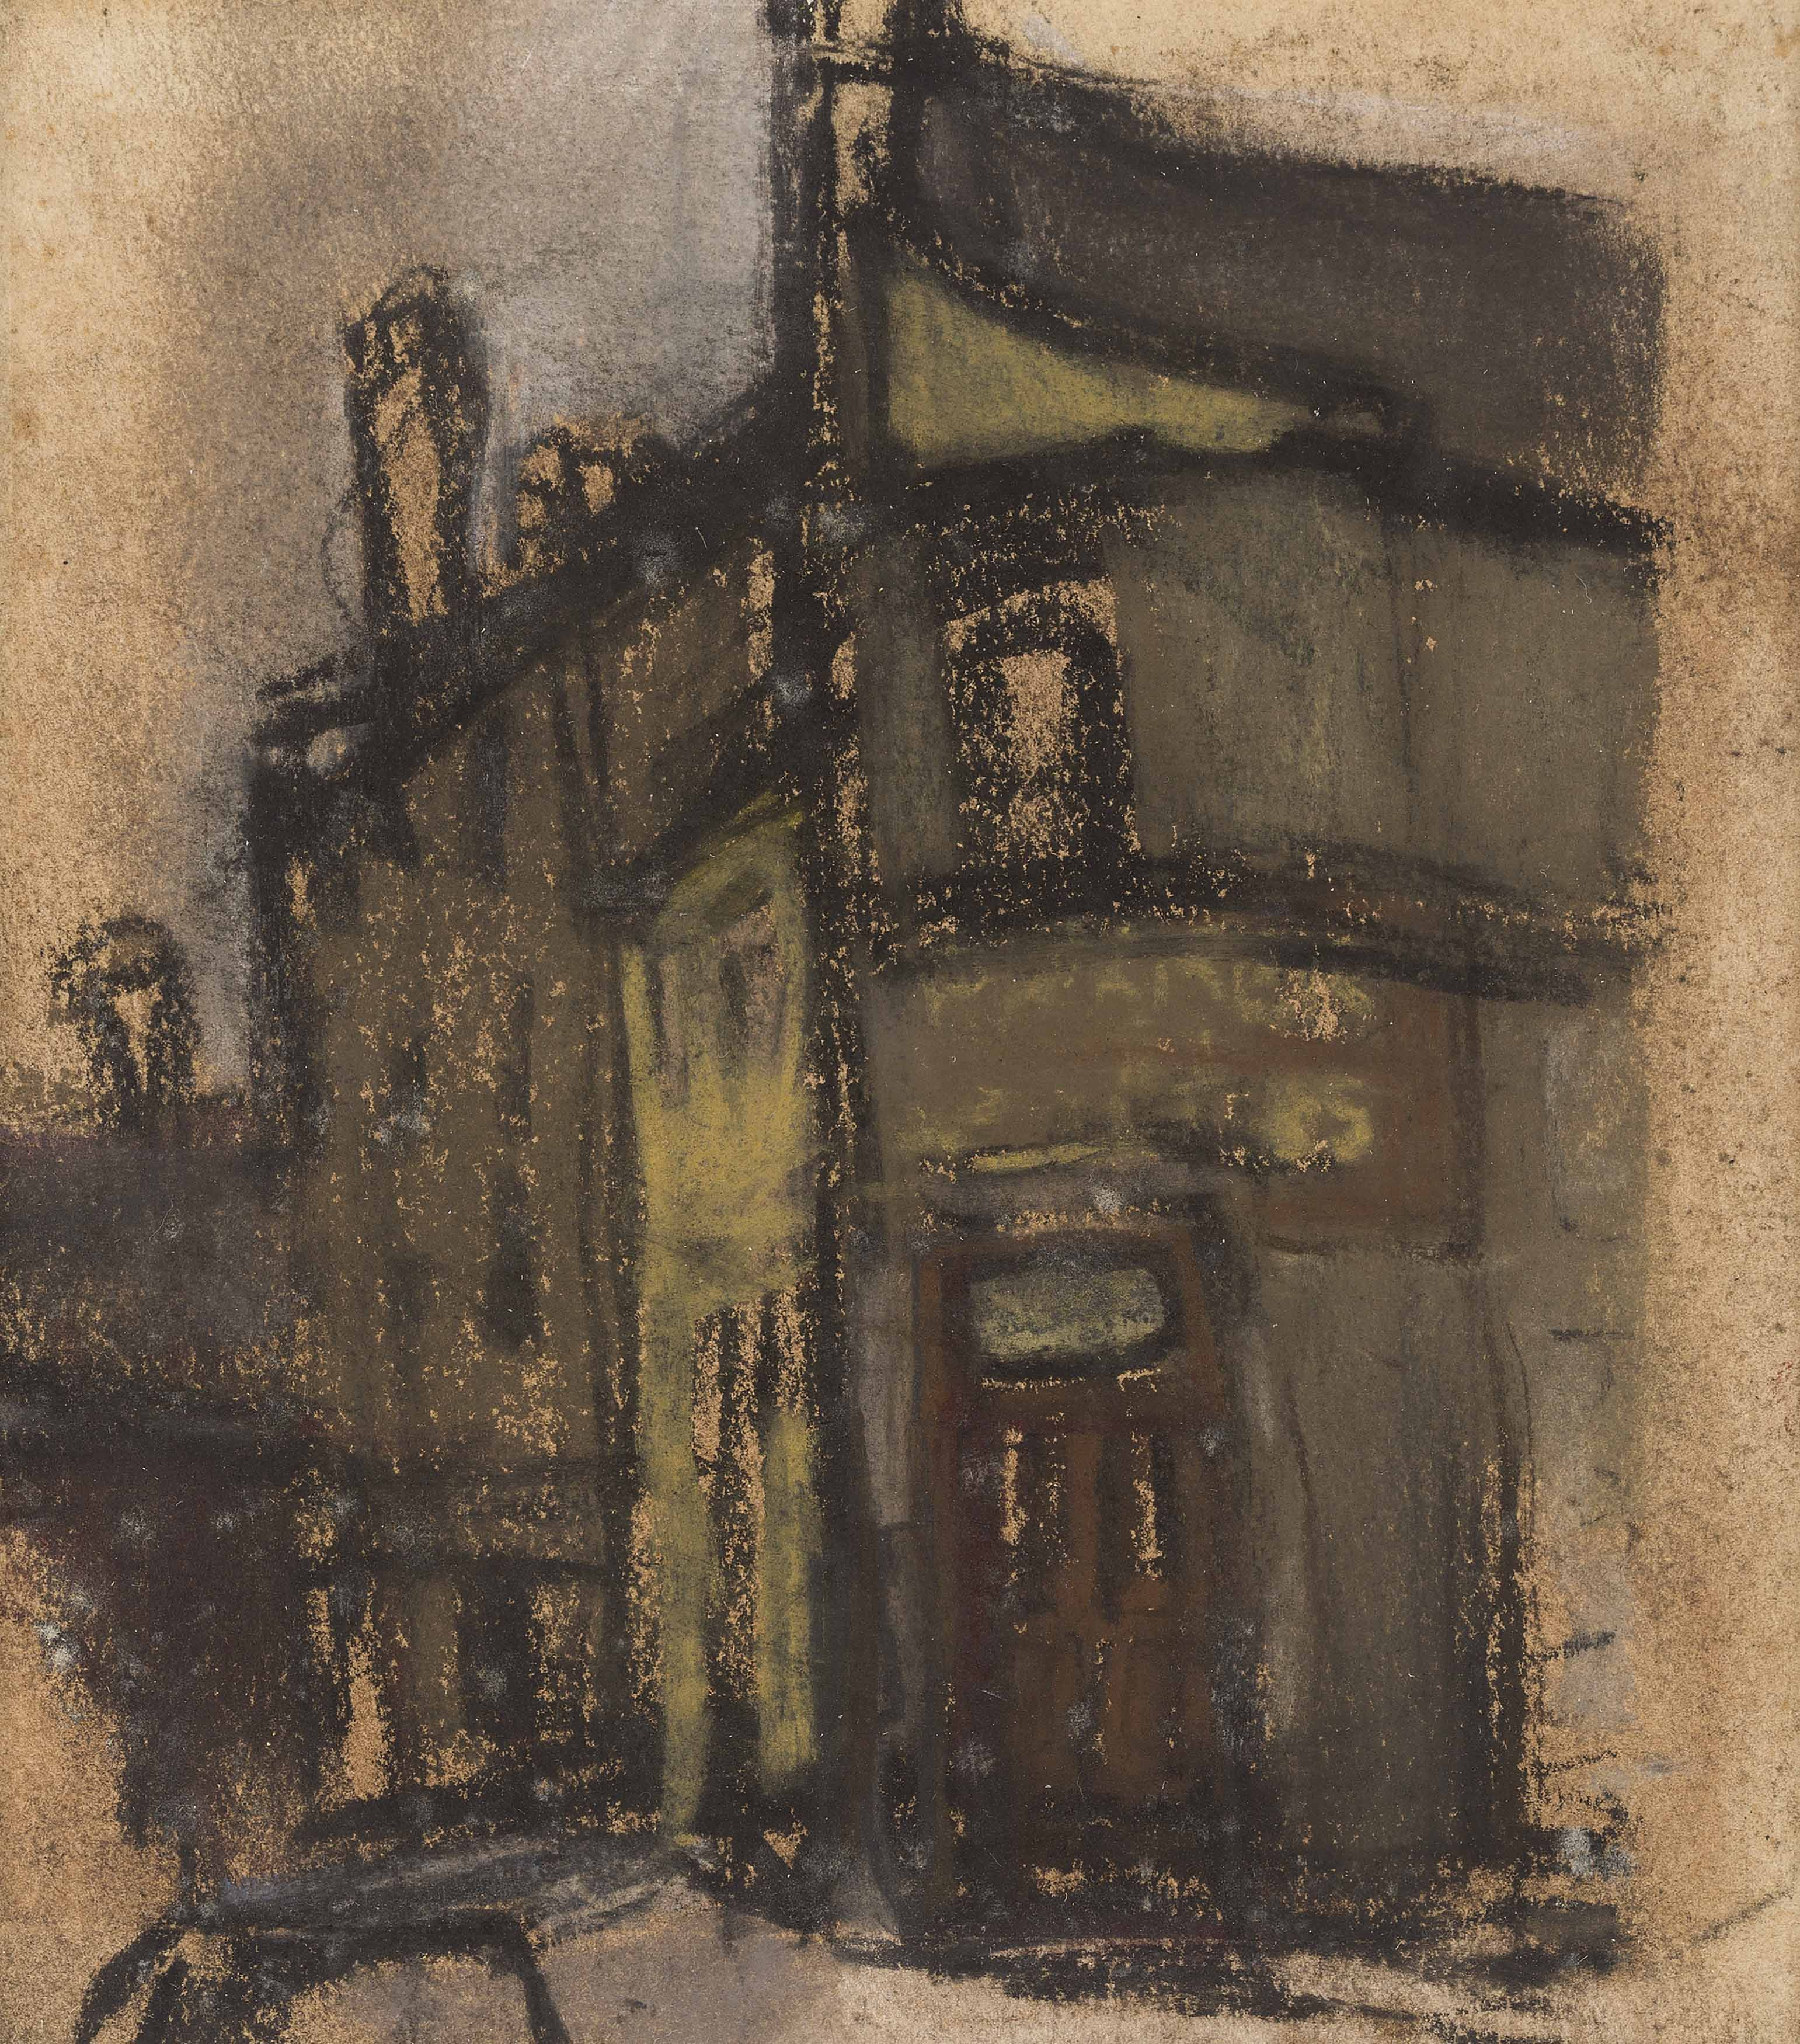 Joan Eardley | A View of Eardley's Townhead Studio